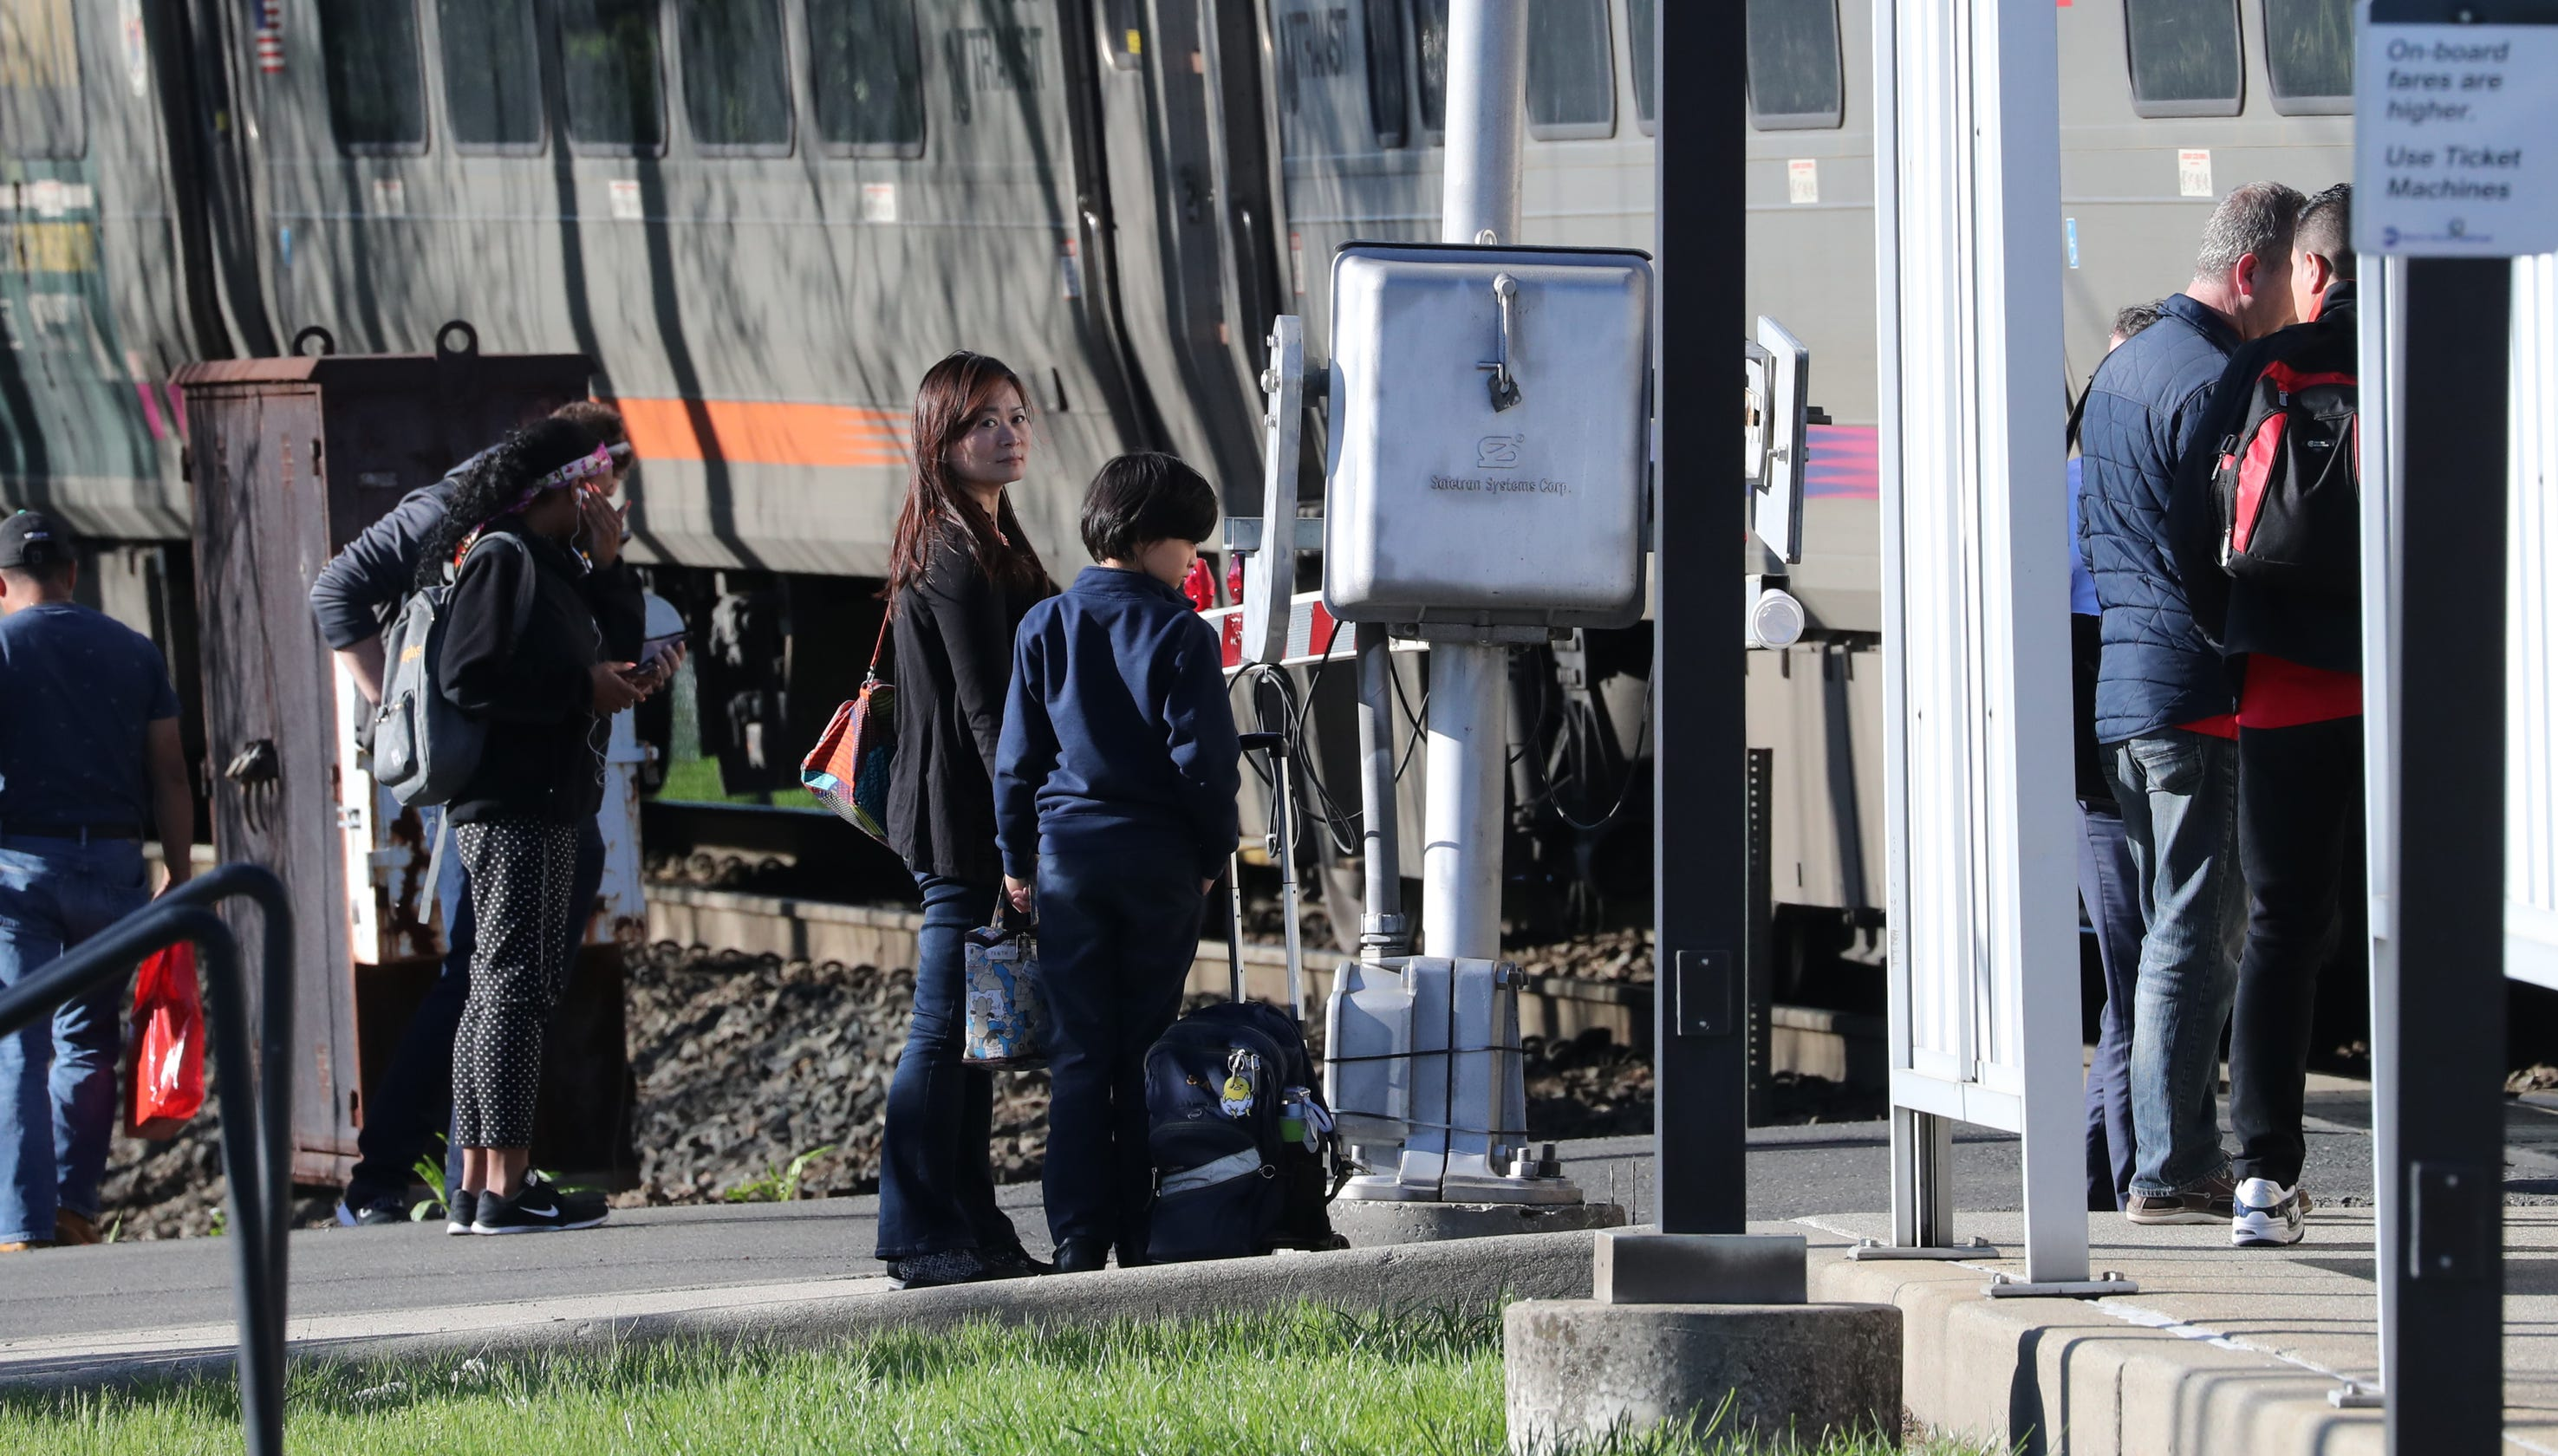 NJ Transit and union withholding support for Metro-North fix